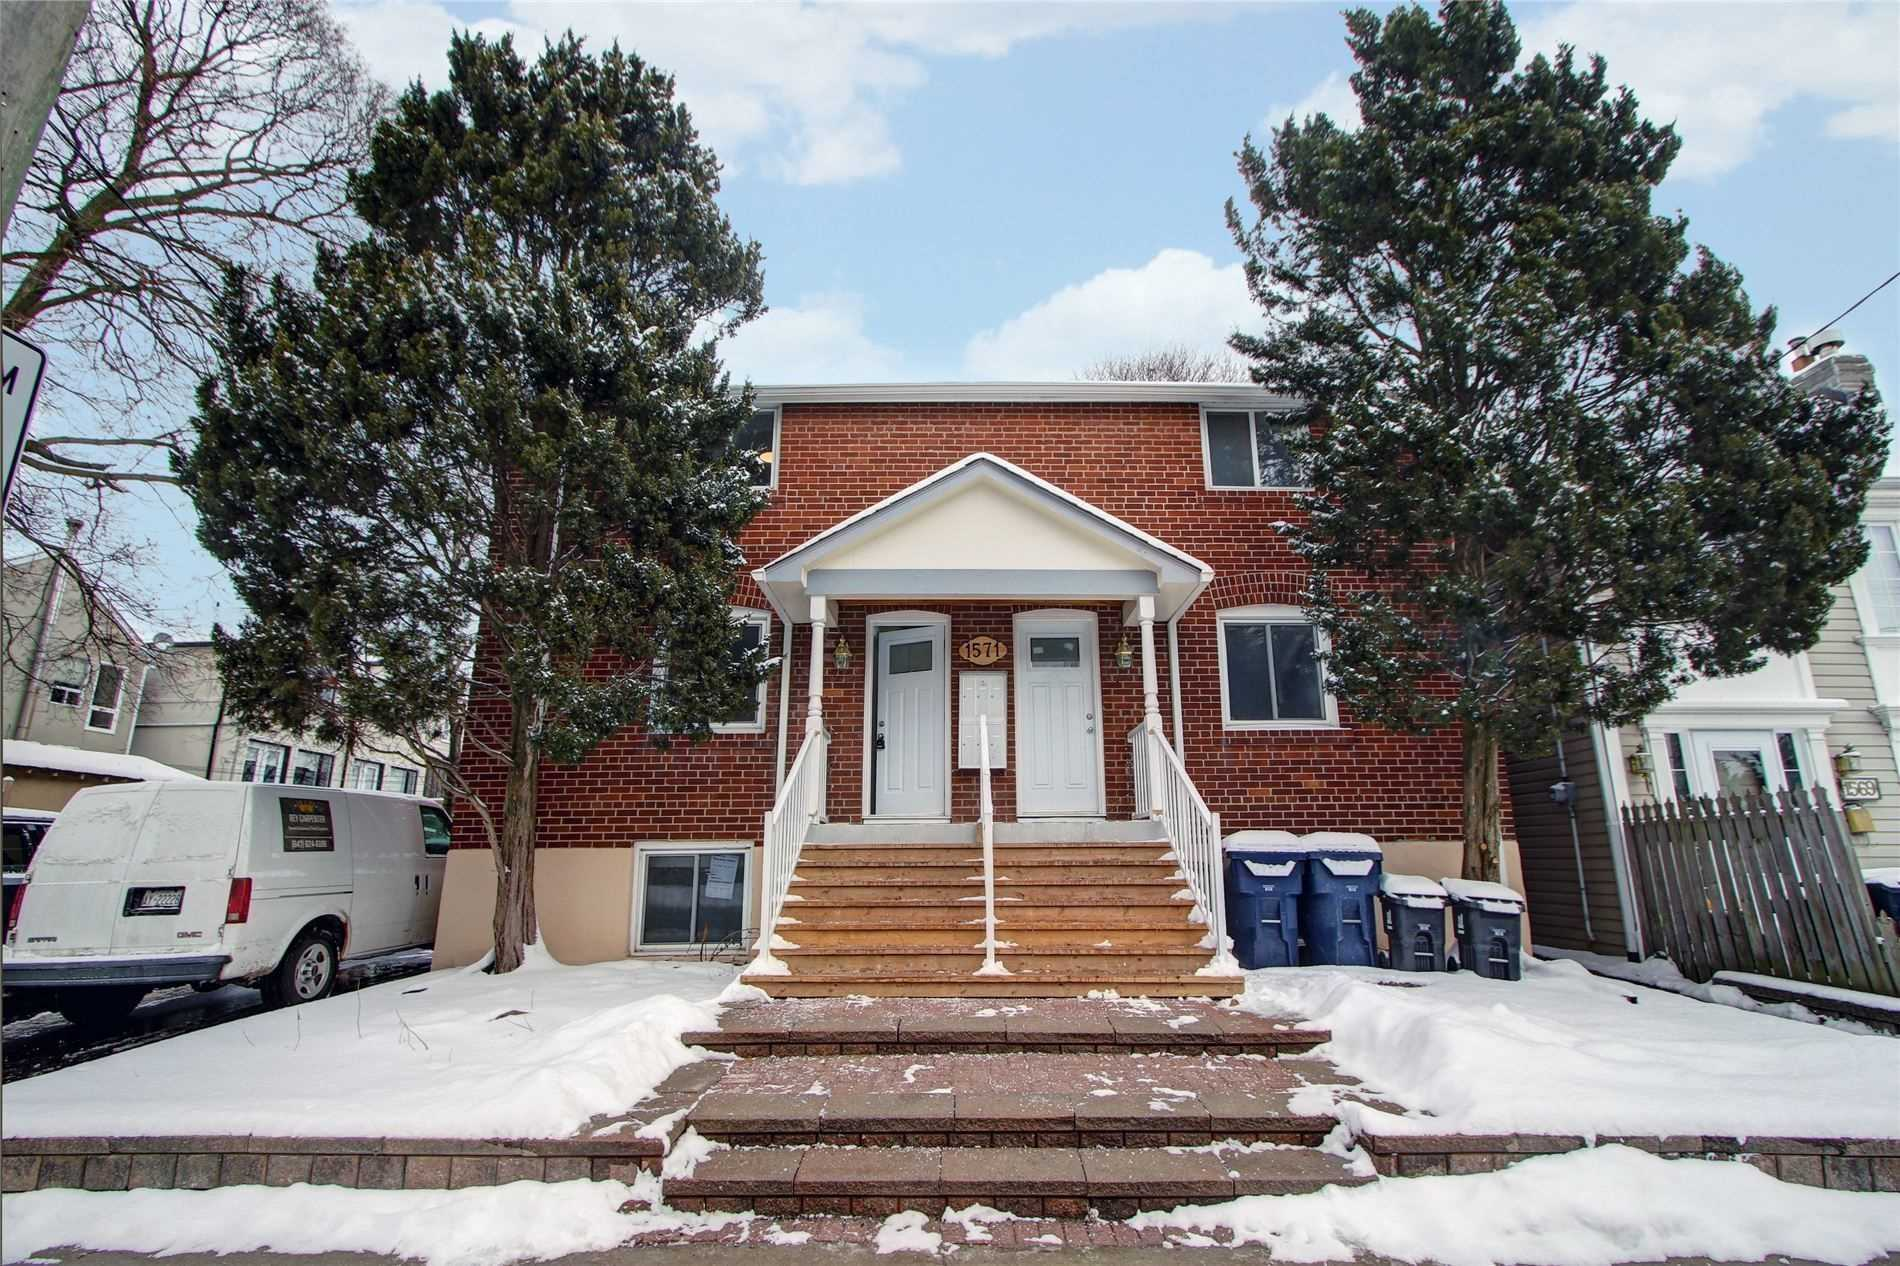 Very Nice 2 Bedroom Unit In Sought After Lawrence Park. Everything Is Updated Including Appliances, Kitchen, Flooring, Window Coverings, And Bathroom. Located Close To Transit, Highways, & Amazing Schools! Parking Is Available For The Unit At An Additional Fee.